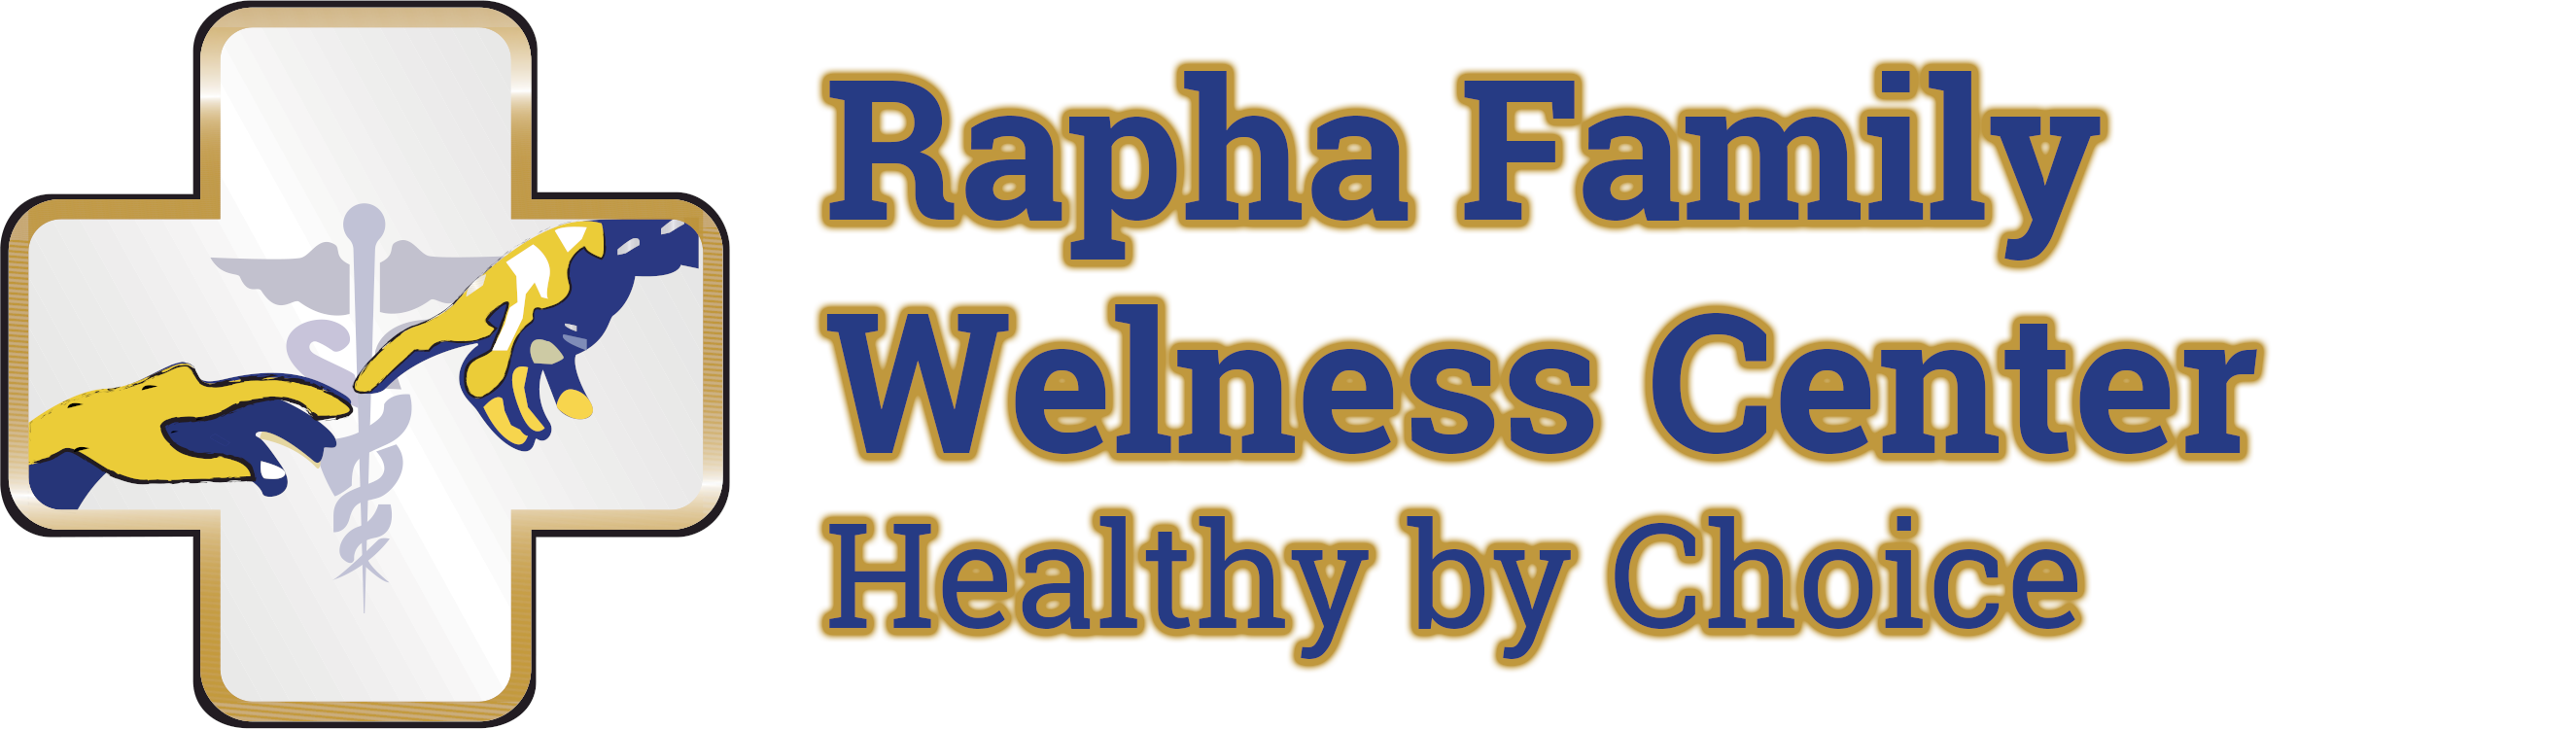 Rapha Family Wellness Center PC